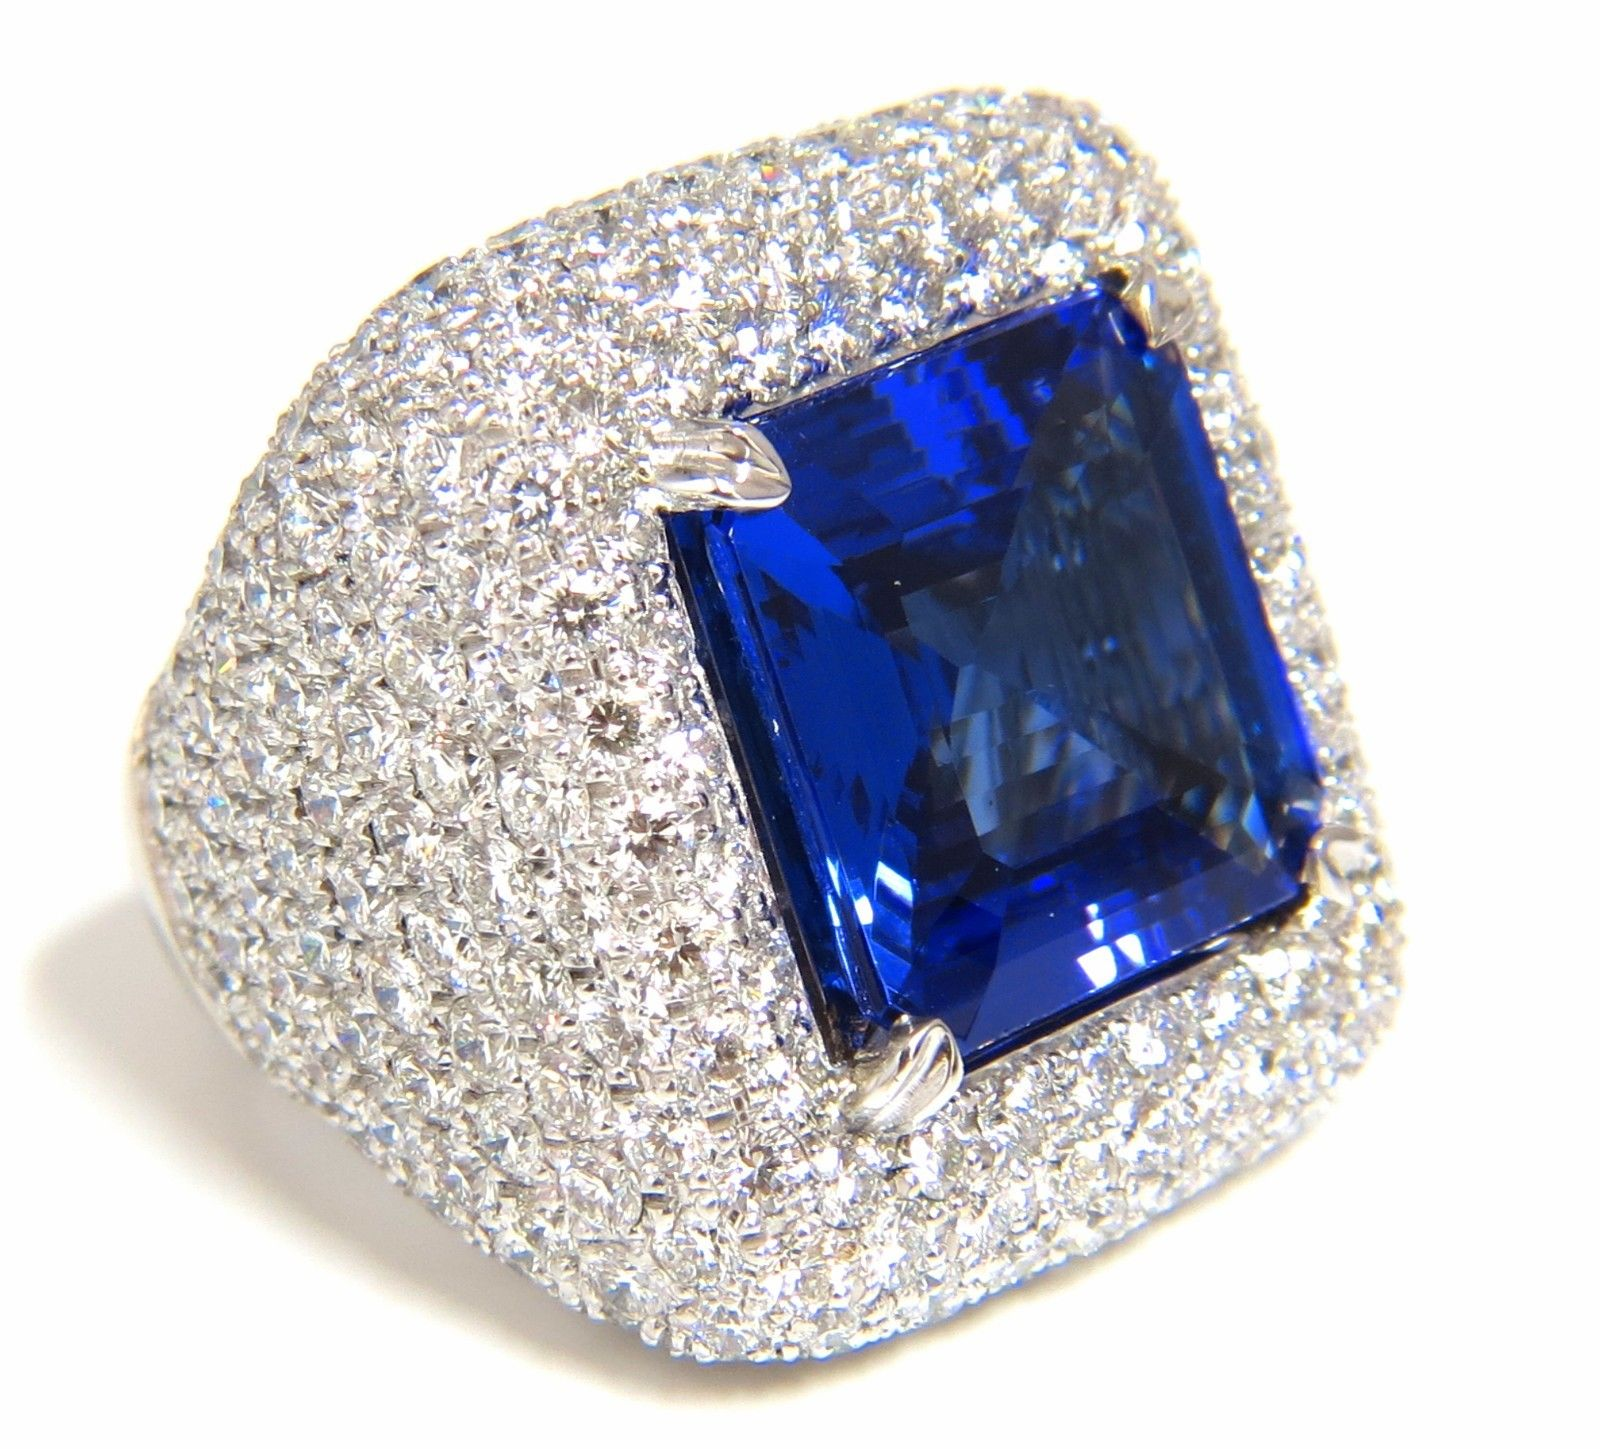 Vintage Cocktail Rings 4.25Ct Diamond 4.50Ct Sapphire Solid Gold Natural Certified